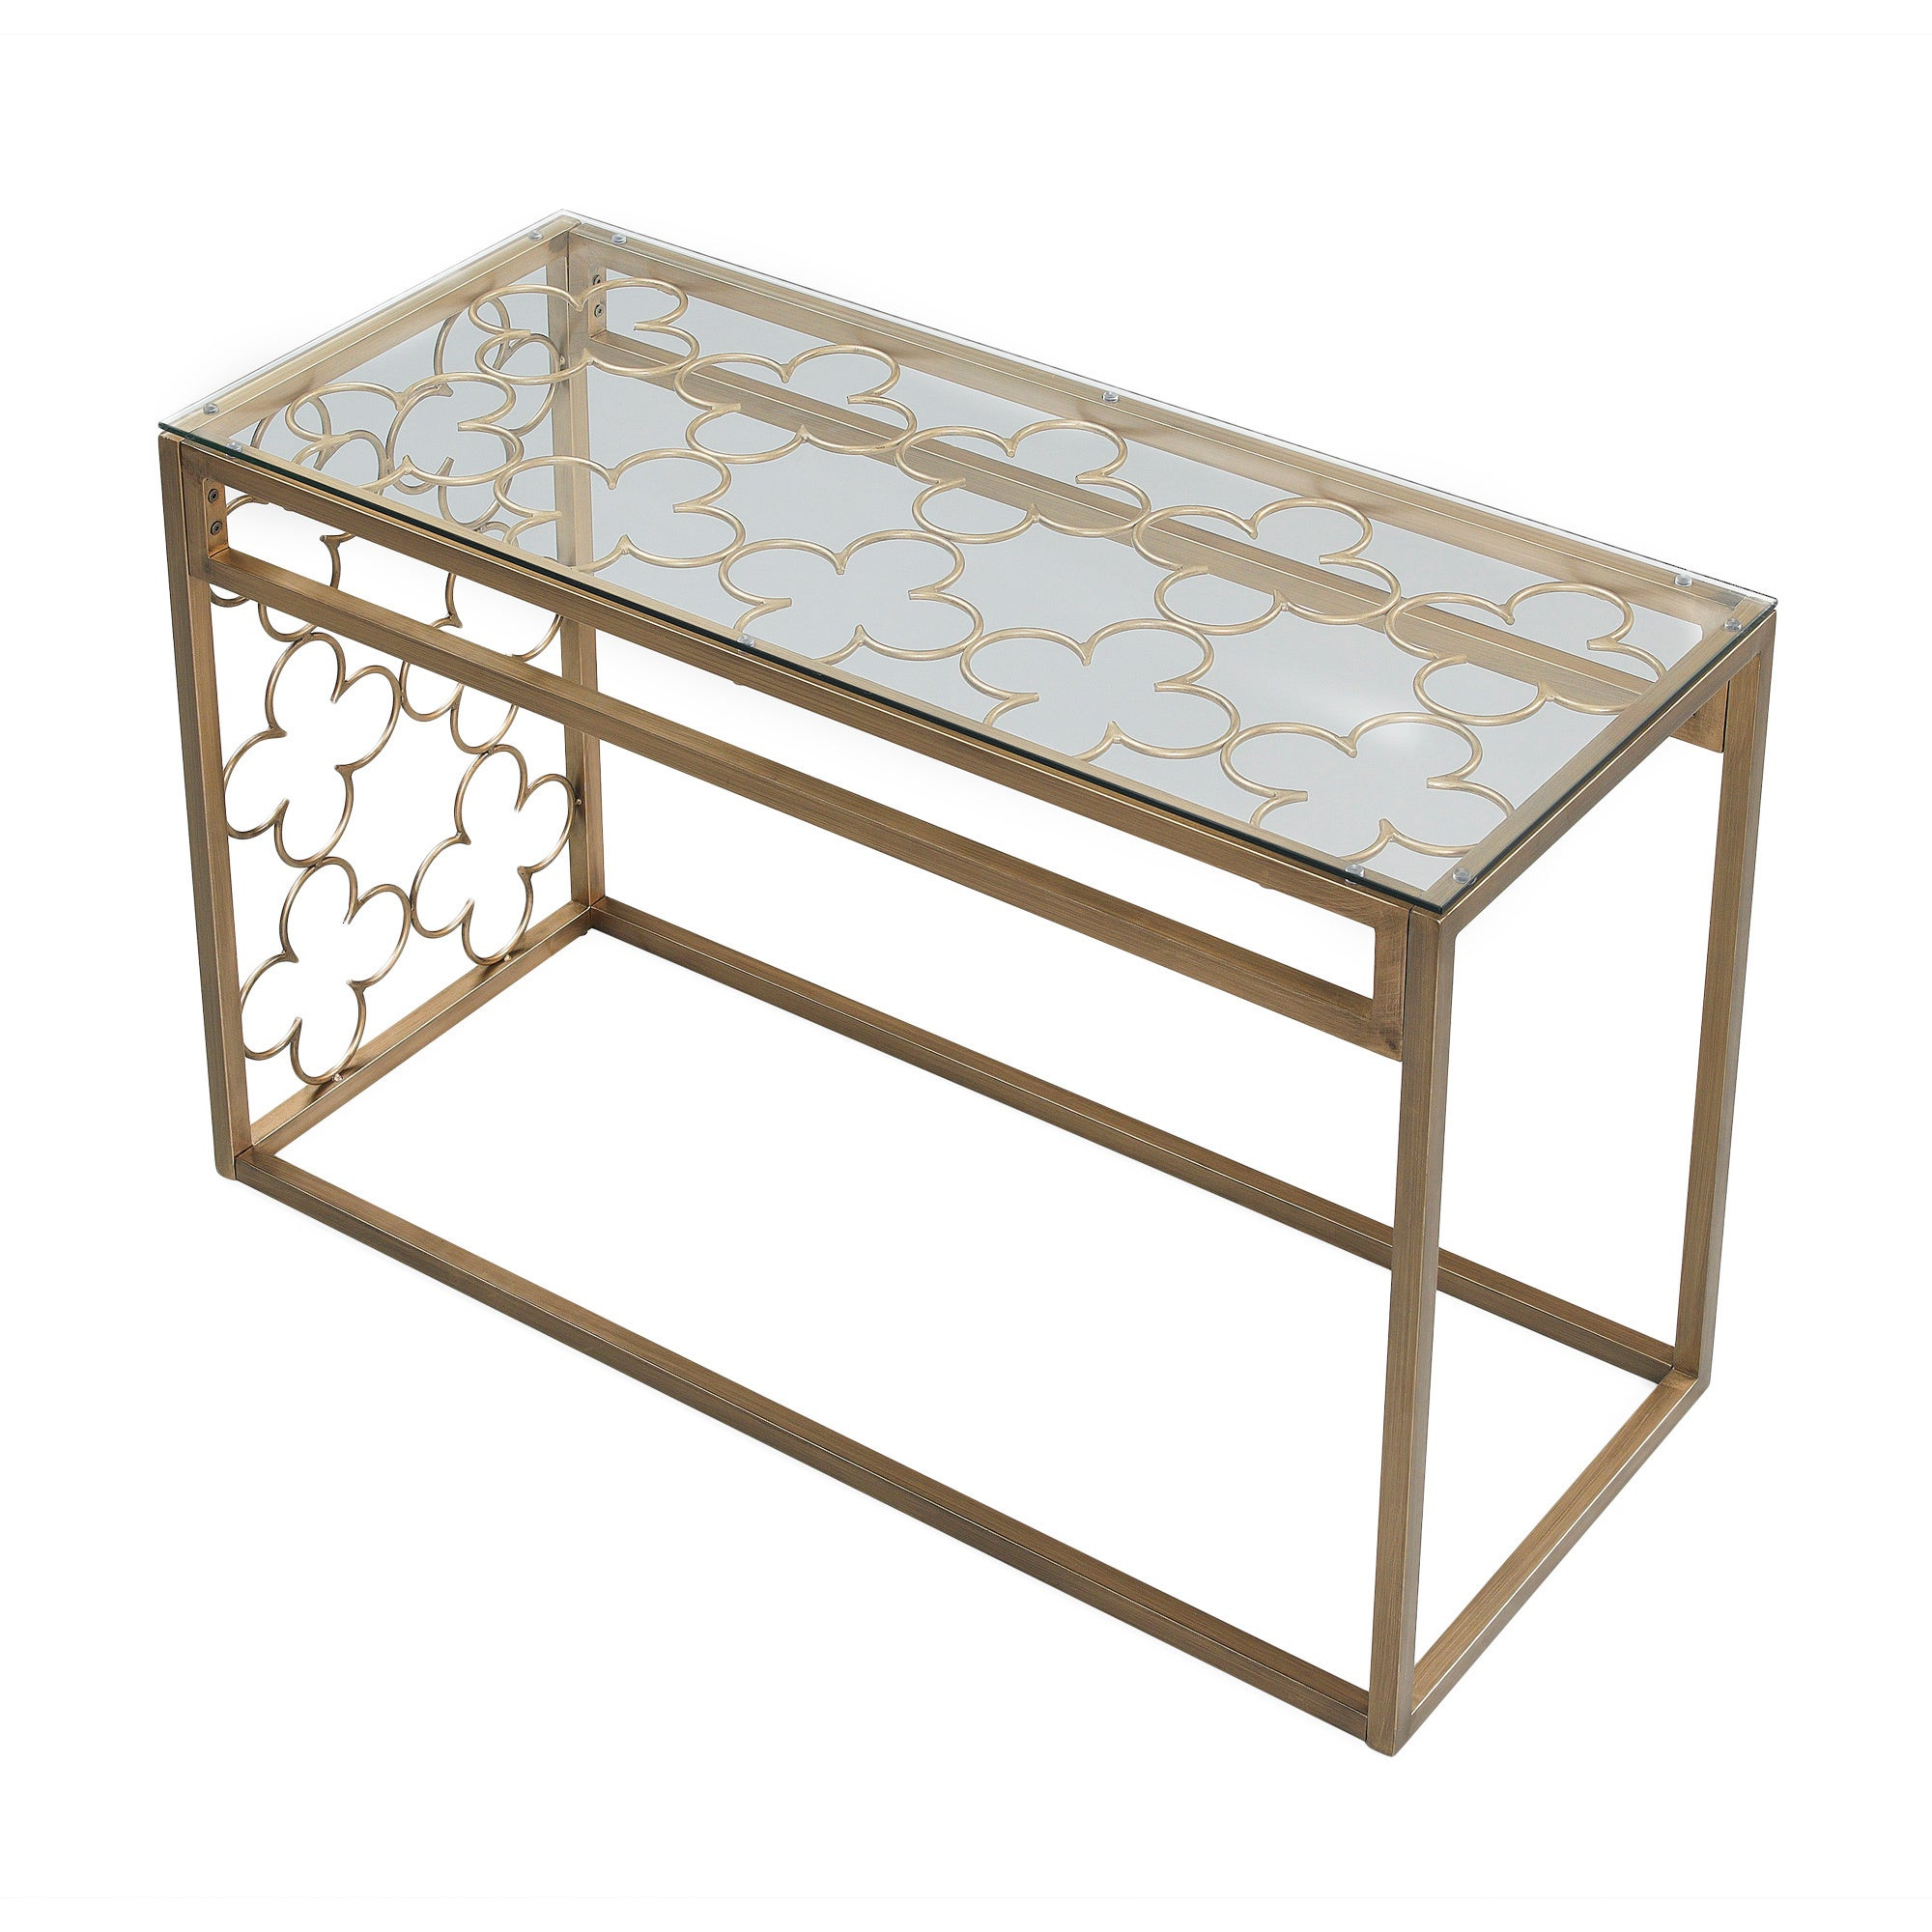 The Curated Nomad Quatrefoil Goldtone Metal And Glass Sofa Table Intended For Latest The Curated Nomad Quatrefoil Goldtone Metal And Glass Coffee Tables (View 12 of 20)